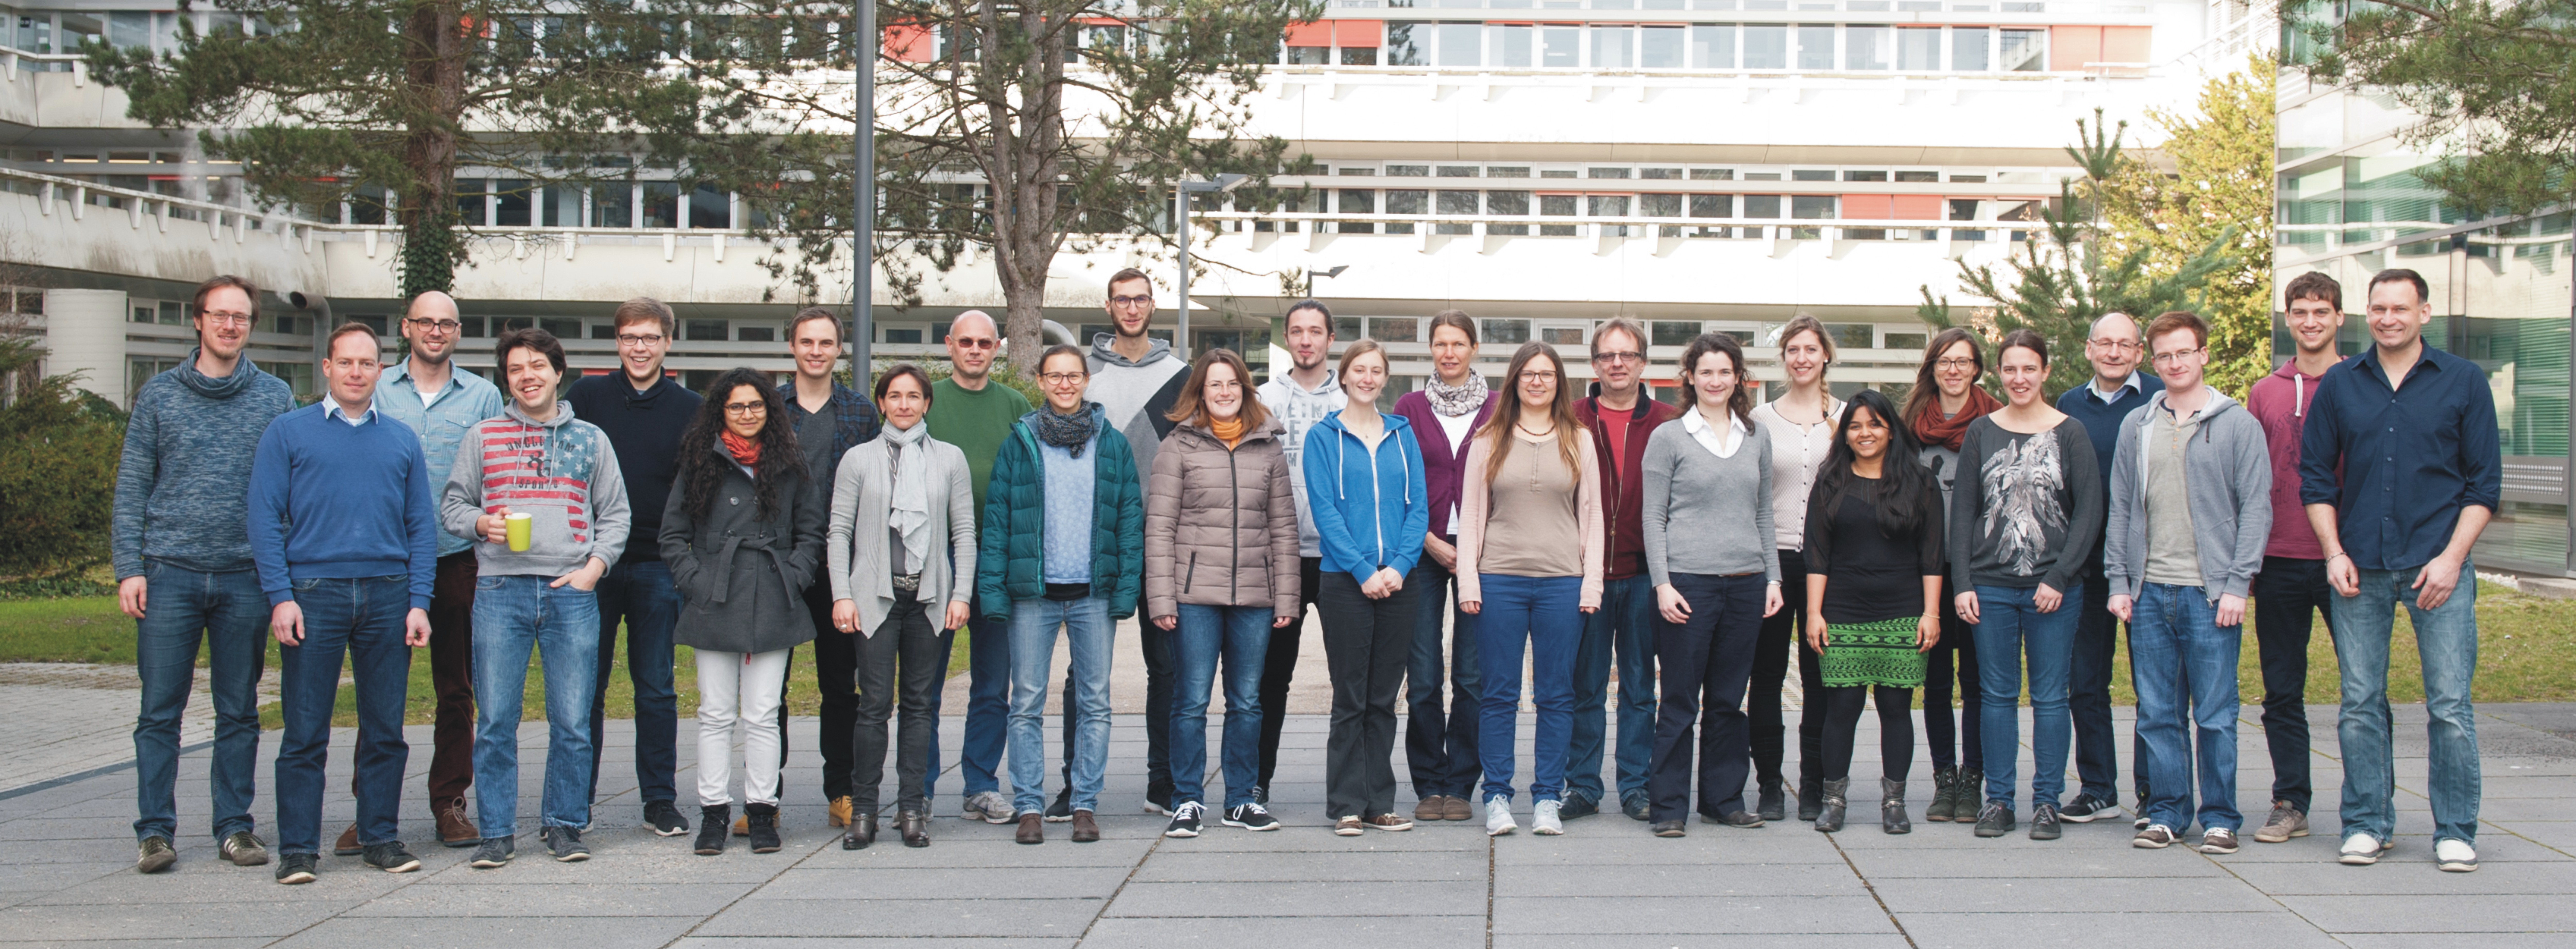 Biophysics Group March 2016